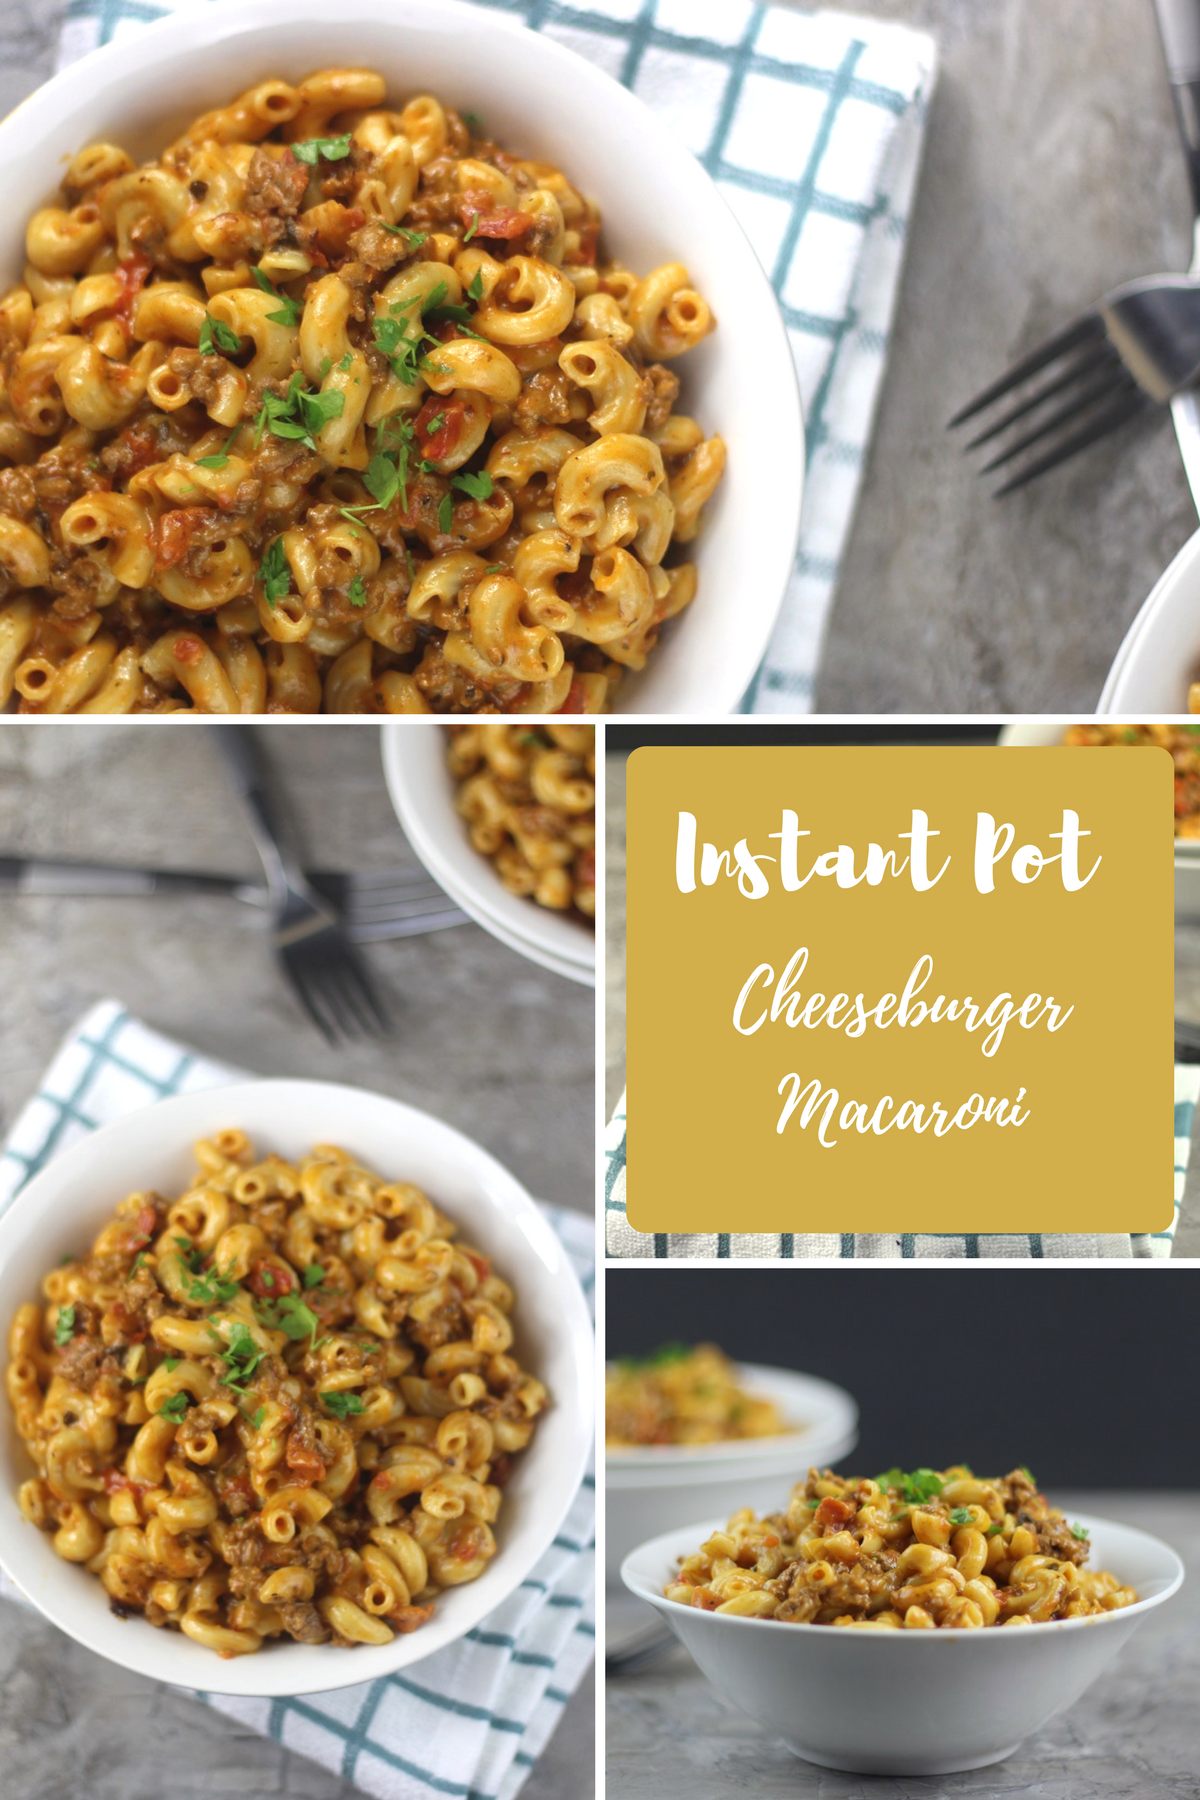 My Instant Pot Cheeseburger Macaroni (Homemade Hamburger Helper Recipe) is an awesome almost effortless, homemade hamburger helper. The taste makes it seem like you slaved over this meal, and I myself, being that I am often dramatic would pretend to have spent hours on it. I promise you will never go back to the boxed version of this hamburger helper recipe!  #instantpot #pressurecooker #pressurecooking #copycat #cheeseburger #hamburgerhelper